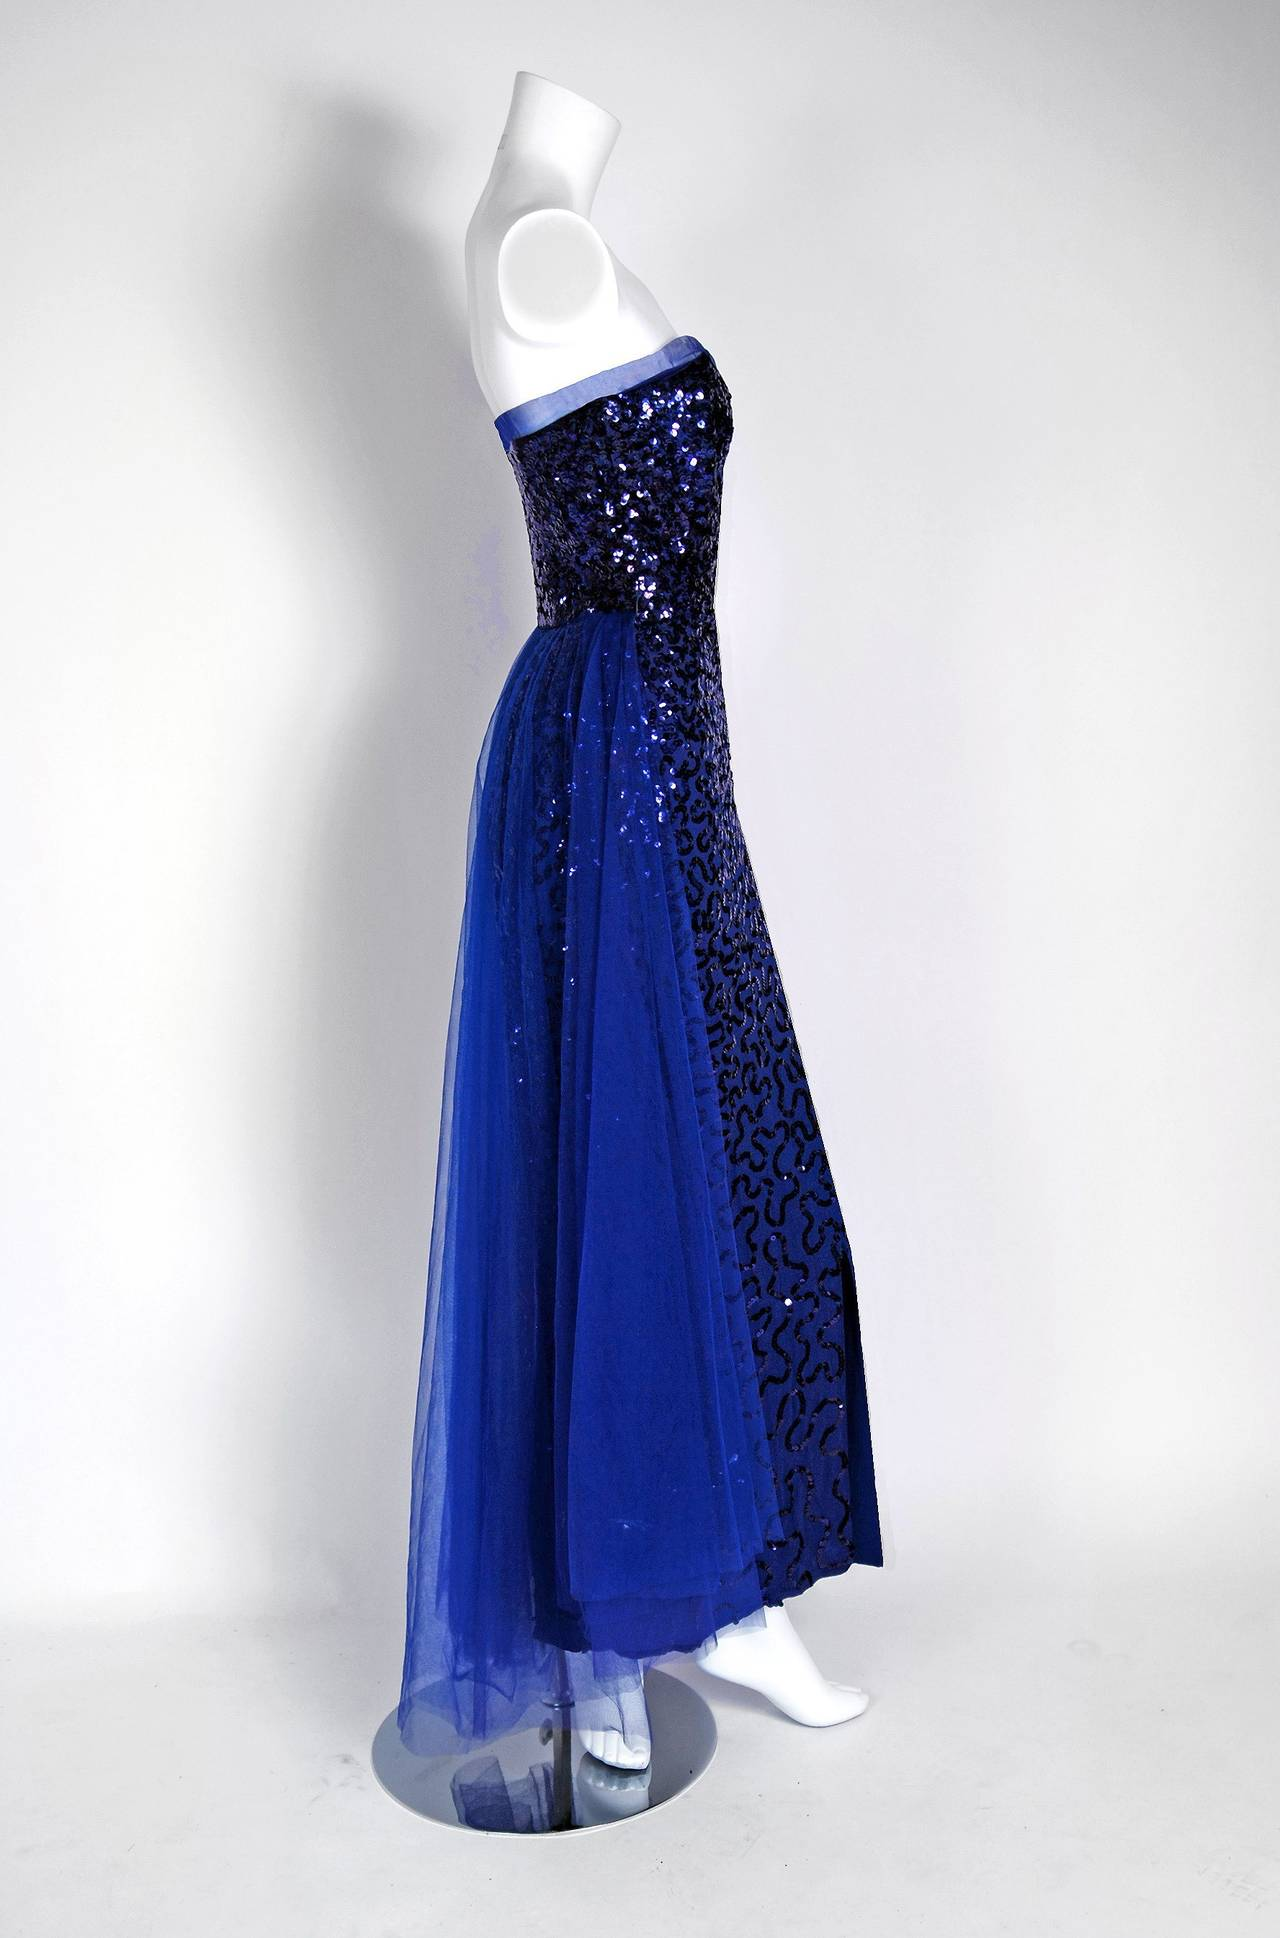 1950's Seductive Royal-Blue Sequin Rayon-Crepe Strapless Trained Evening Gown 4